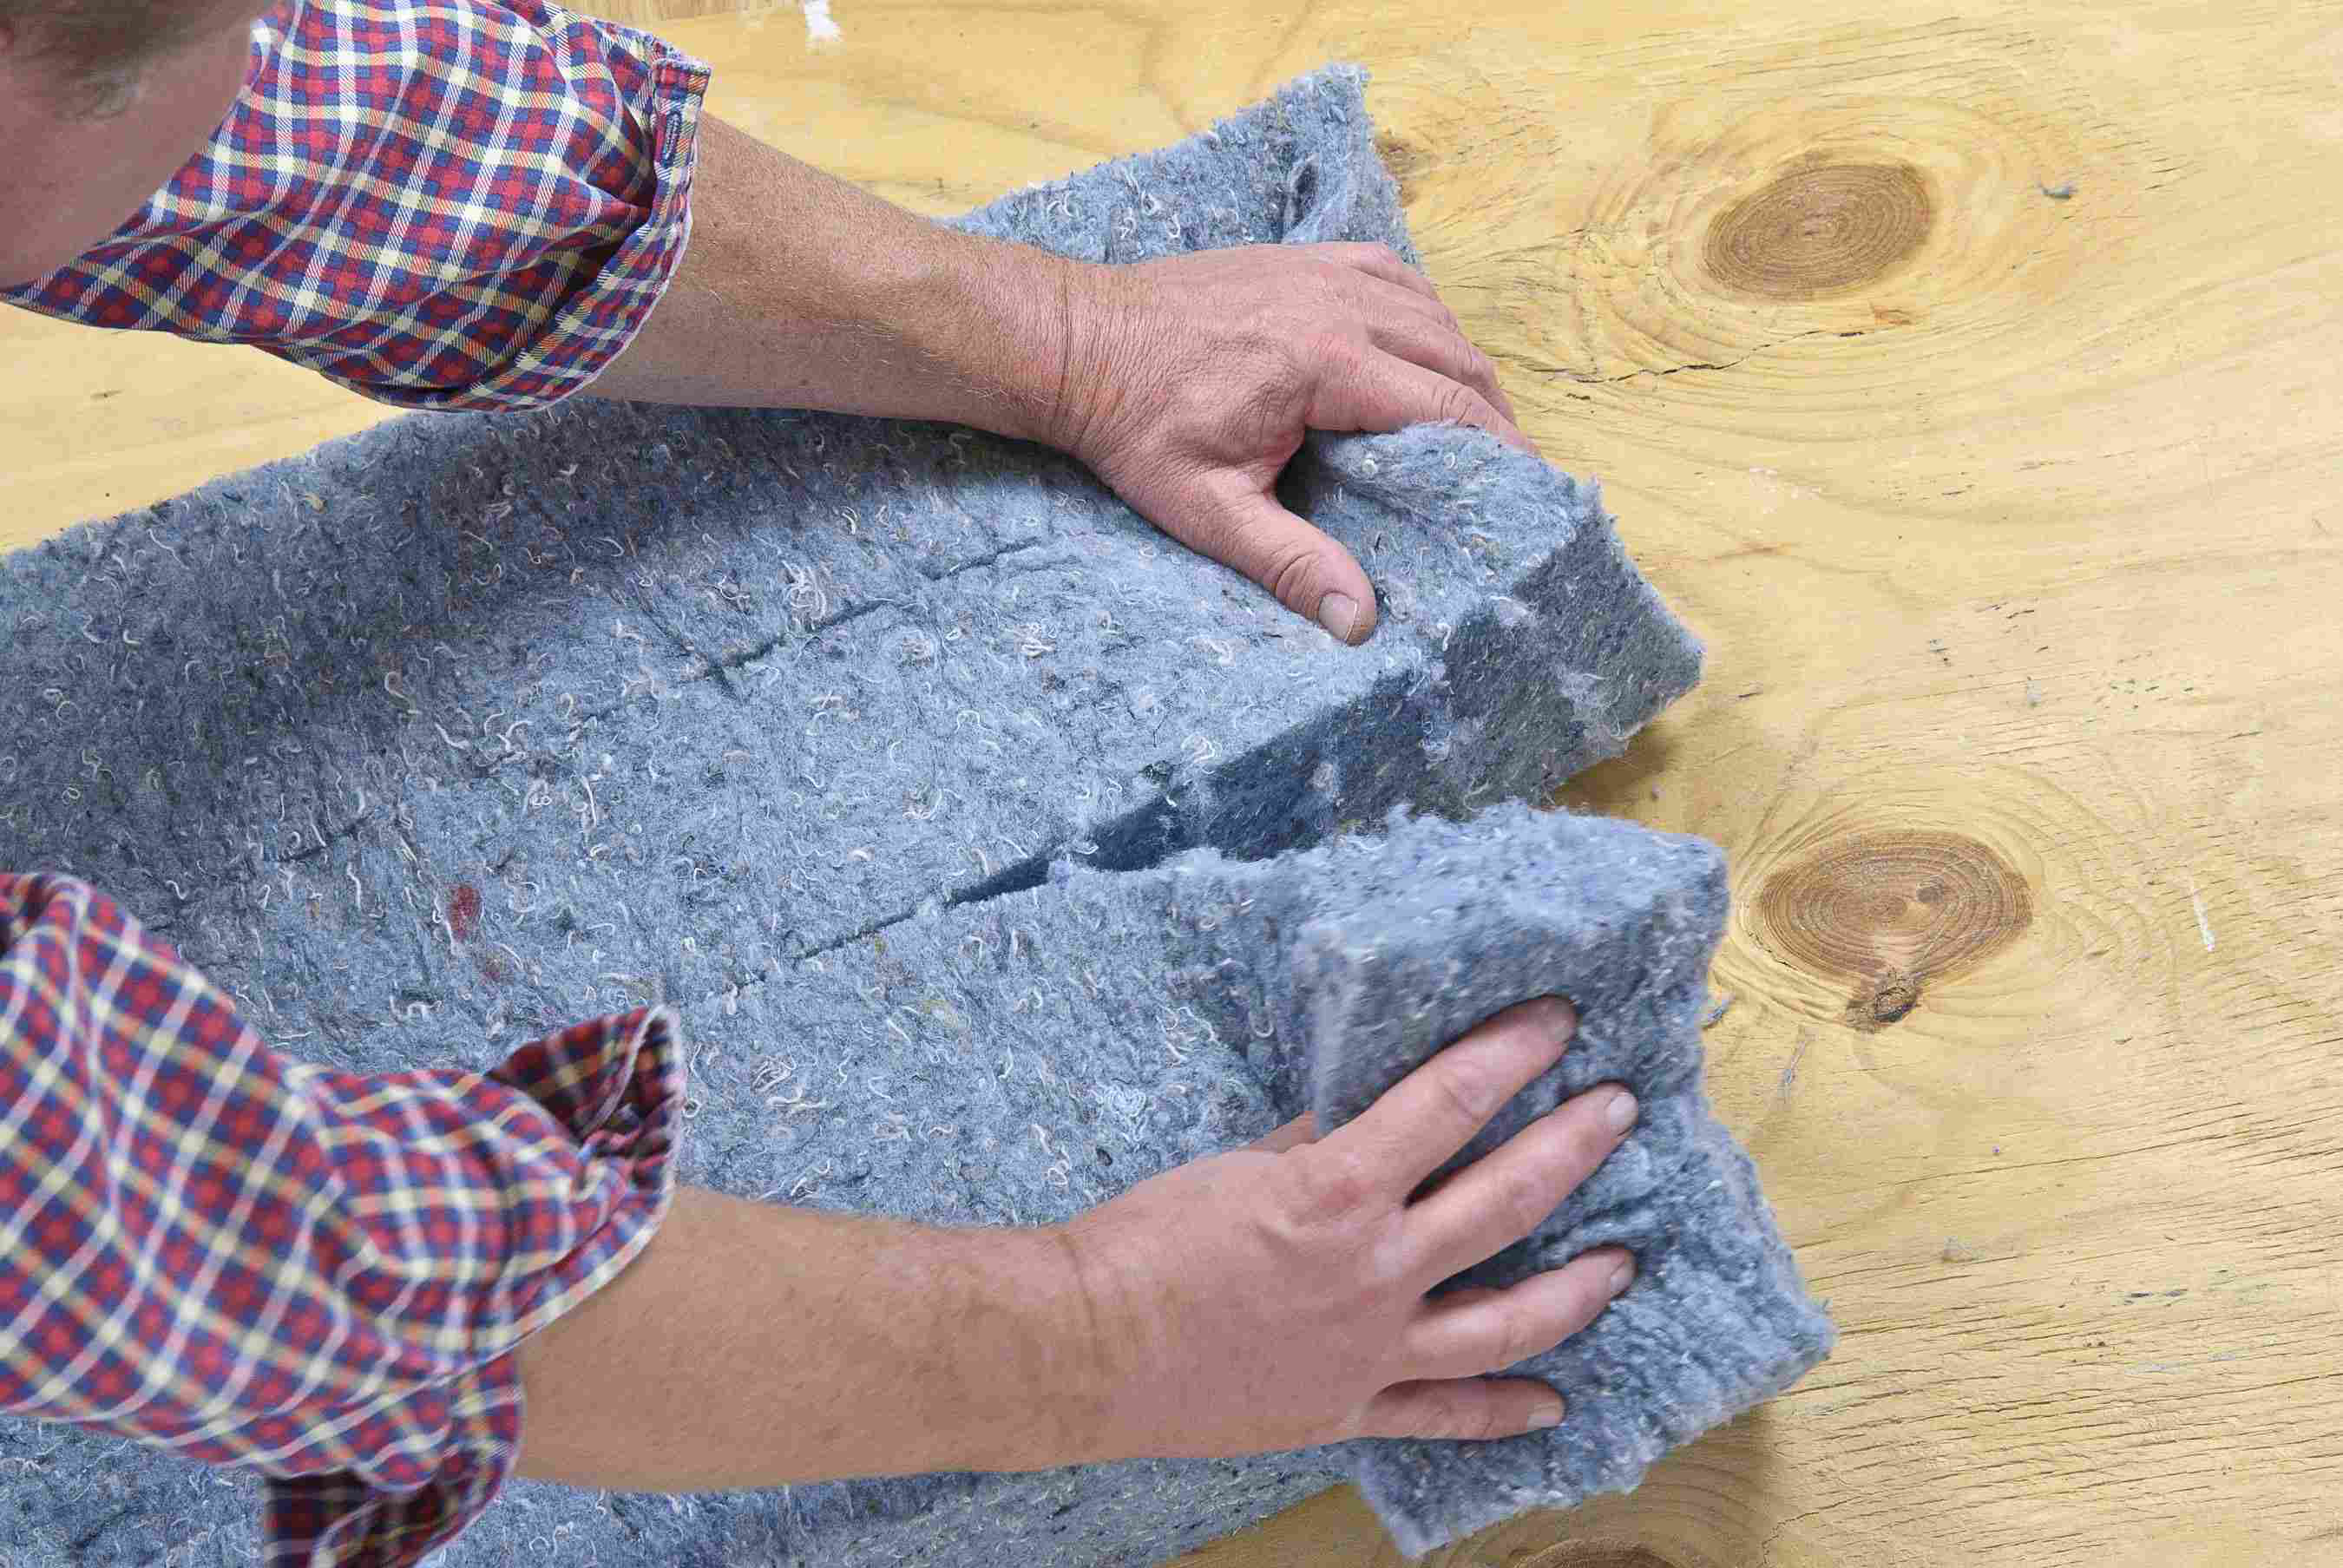 Ultra Touch Denim Insulation : Gear no itch with ultratouch recycled denim insulation